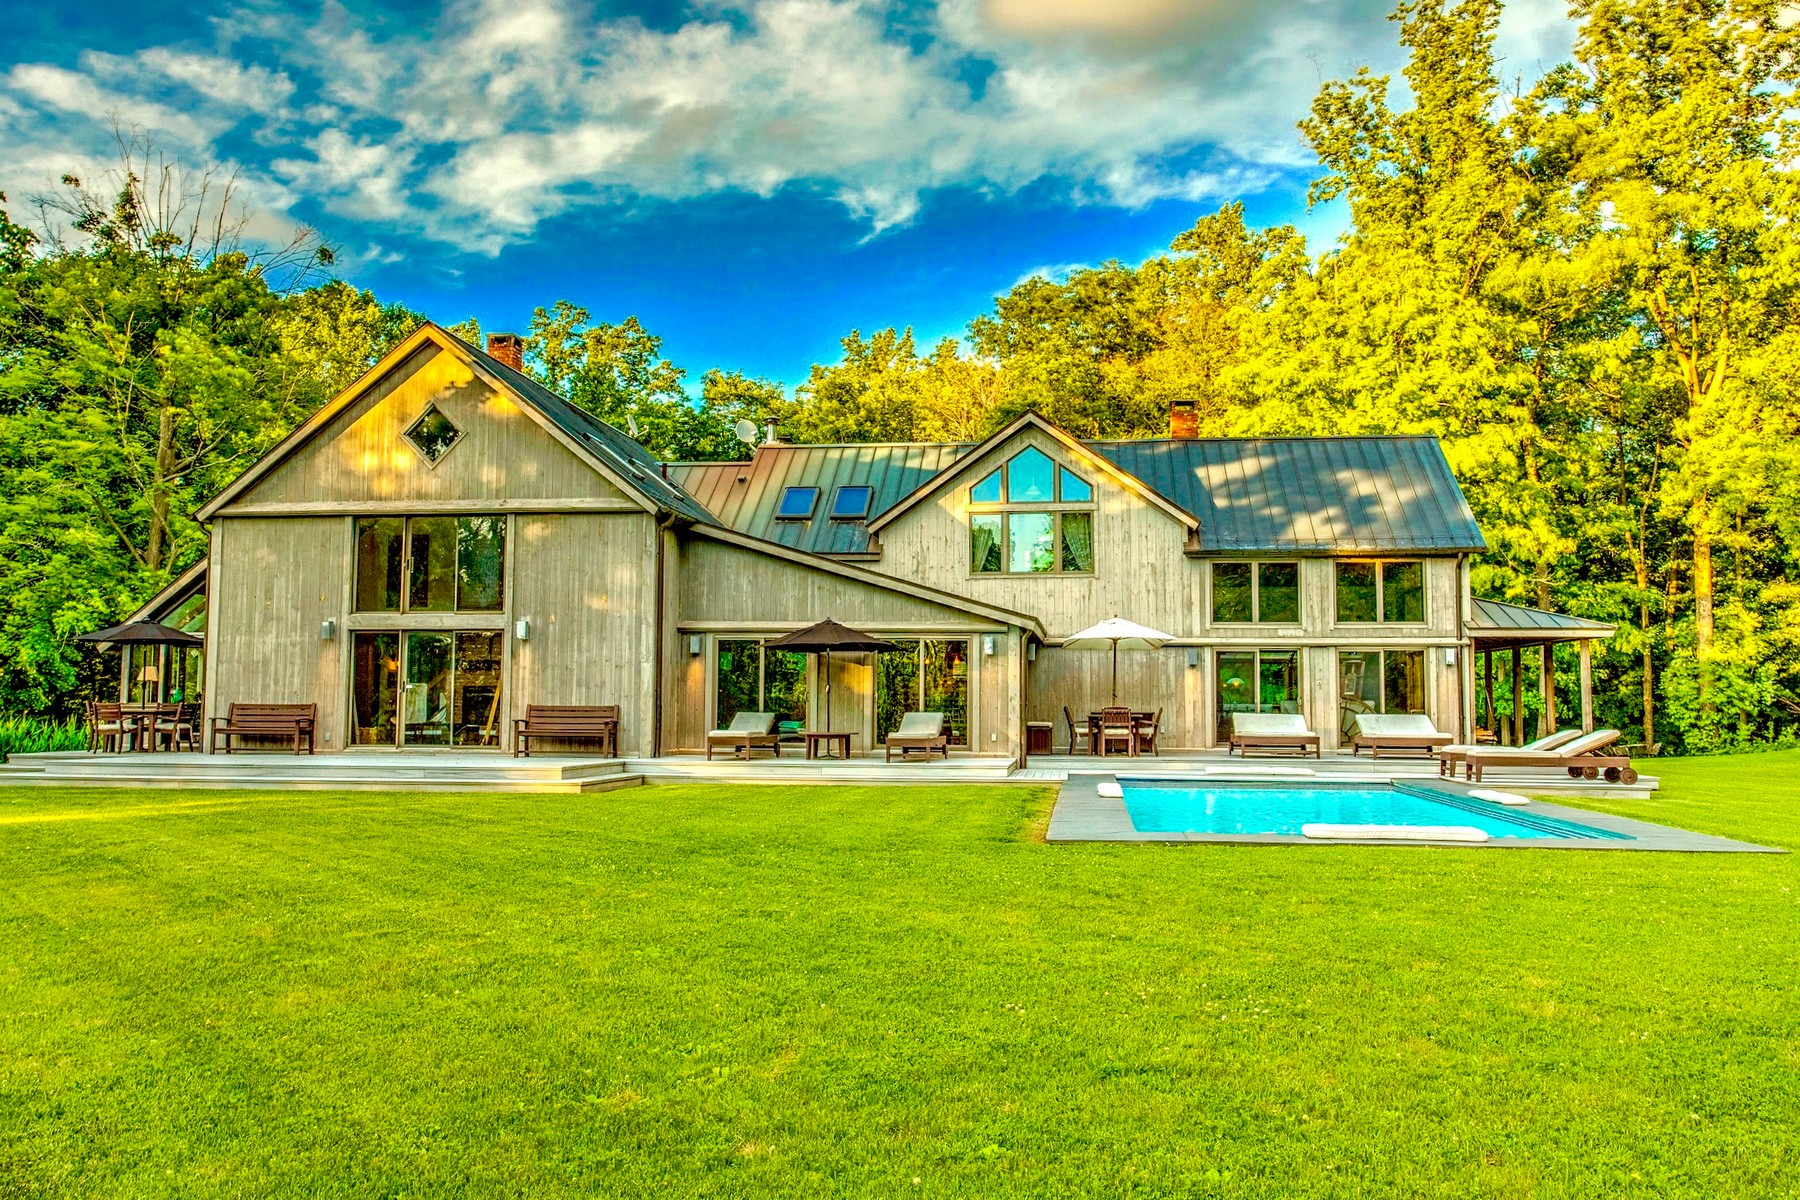 Single Family Home for Sale at Quintessential Country Estate 316 Avery Rd Garrison, New York, 10524 United States